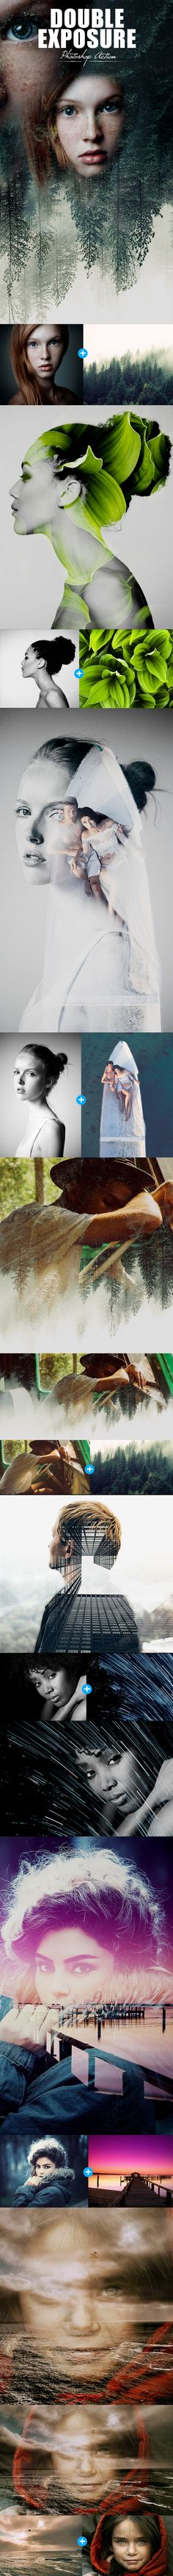 Double Exposure - Photo Effects Actions